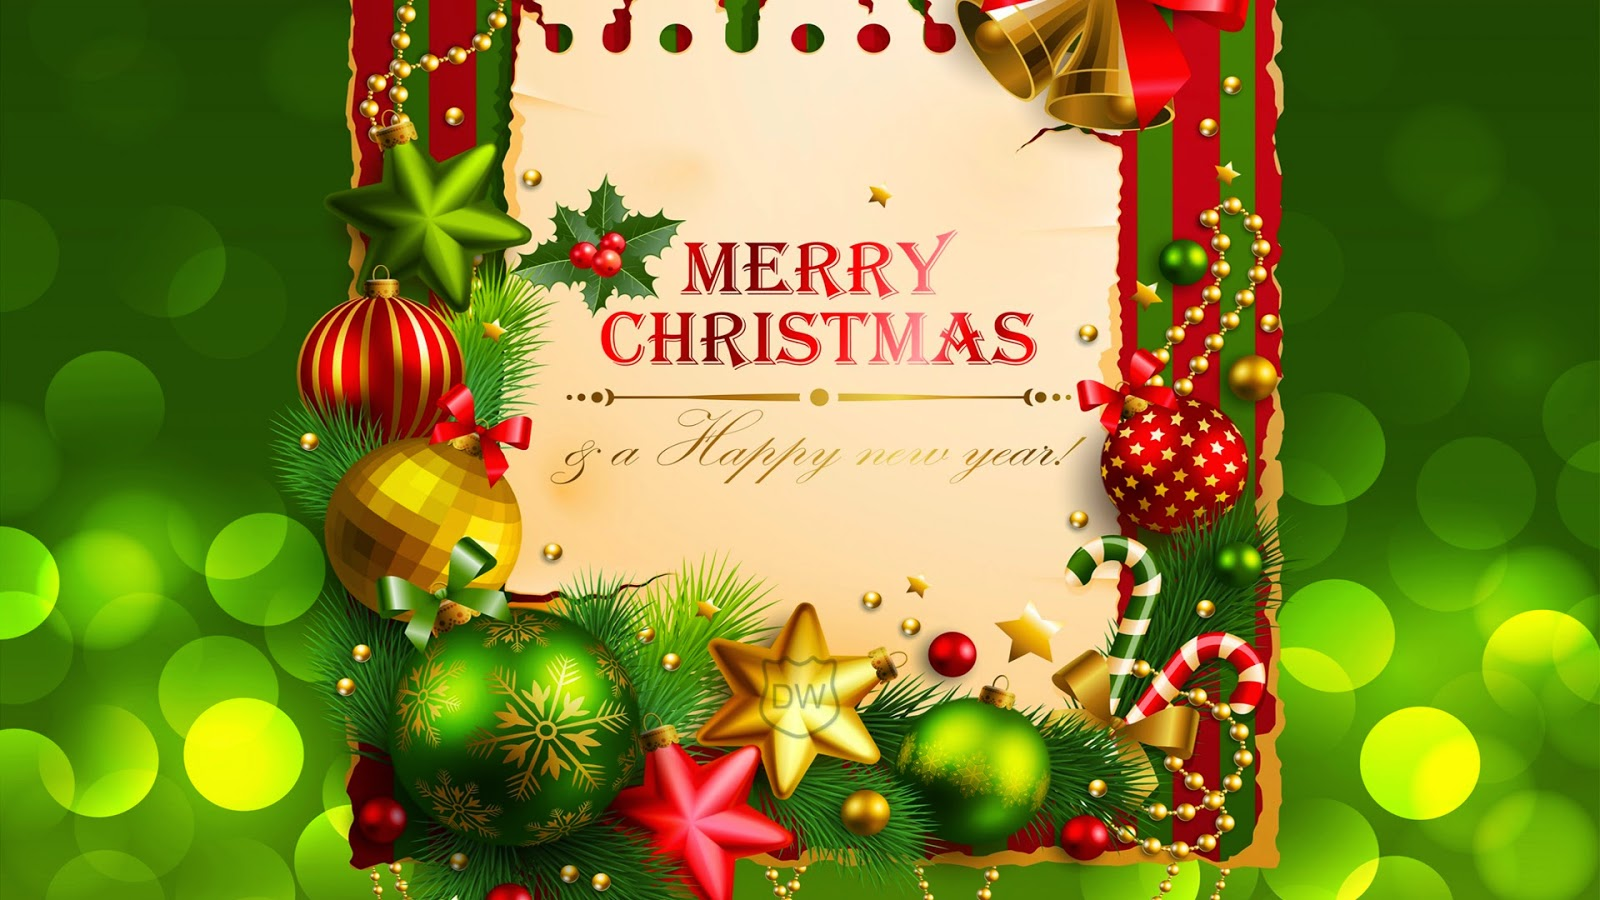 Merry Christmas And Happy New Year Wallpaper 2014